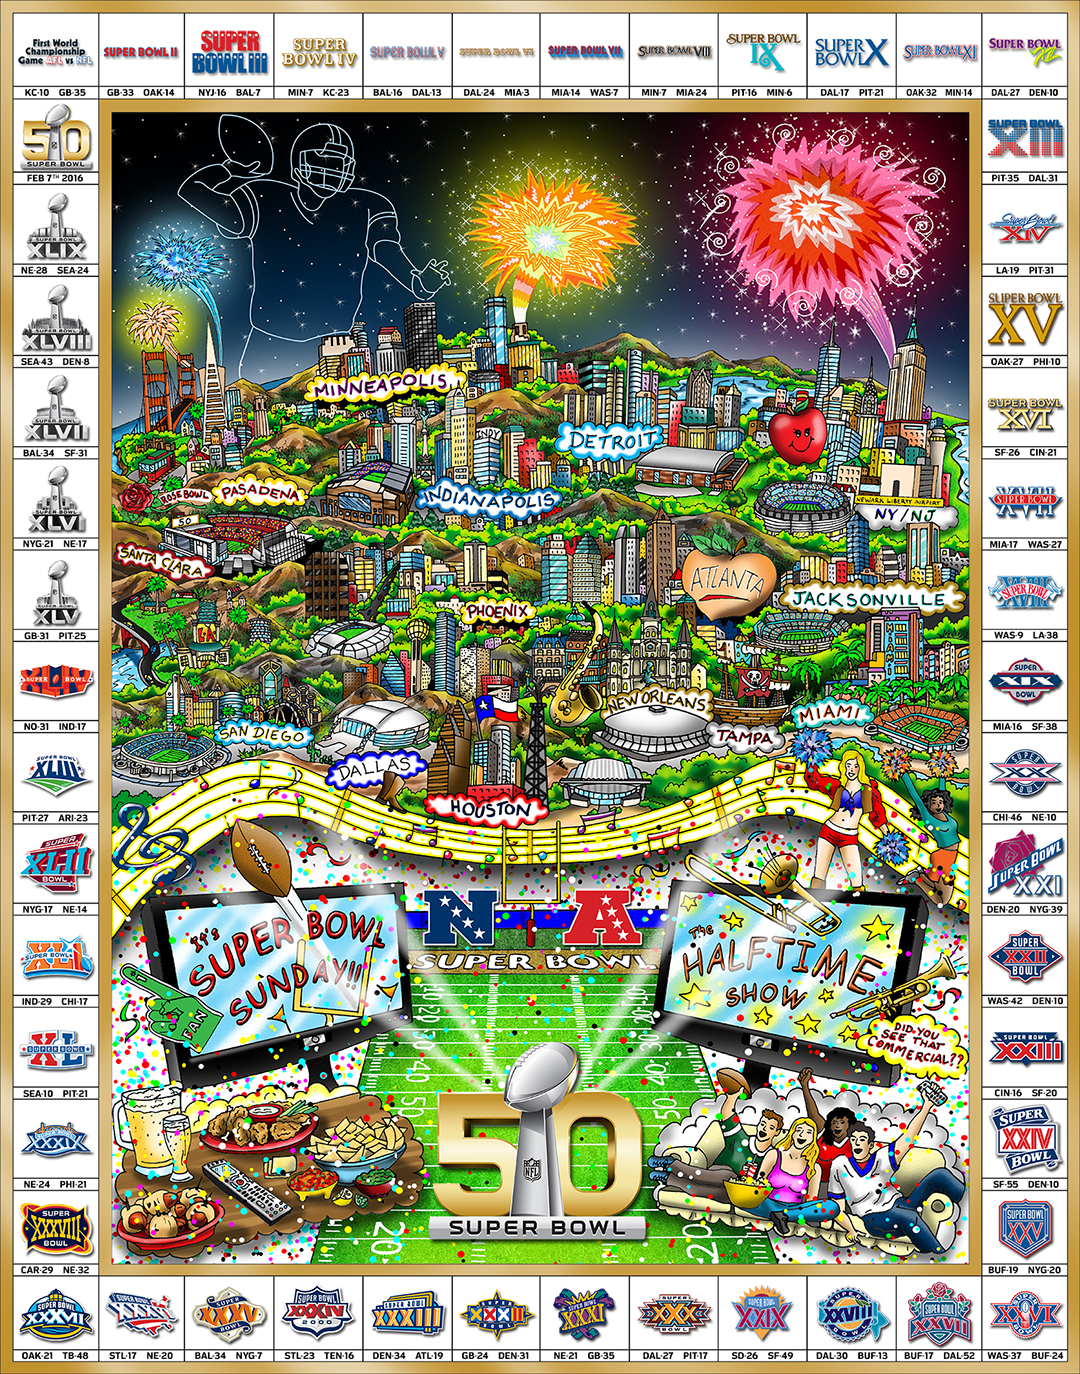 Charles Fazzino Celebrating 50 Years of Super Bowl (Poster)